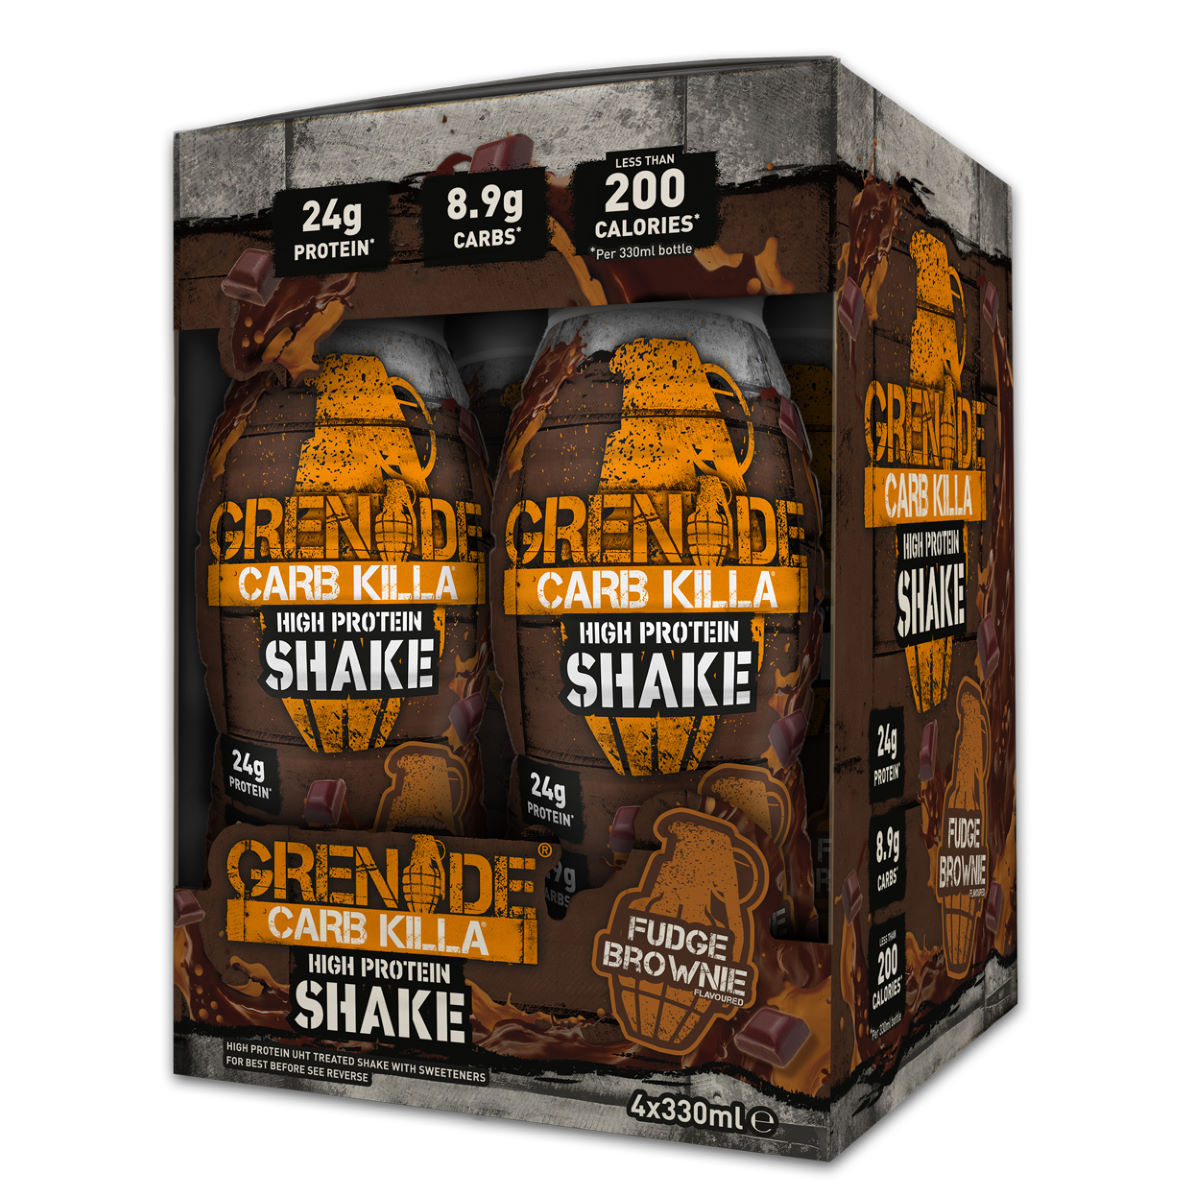 Grenade Carb Killa High Protein Shake (4x330ml) - Bebidas preparadas